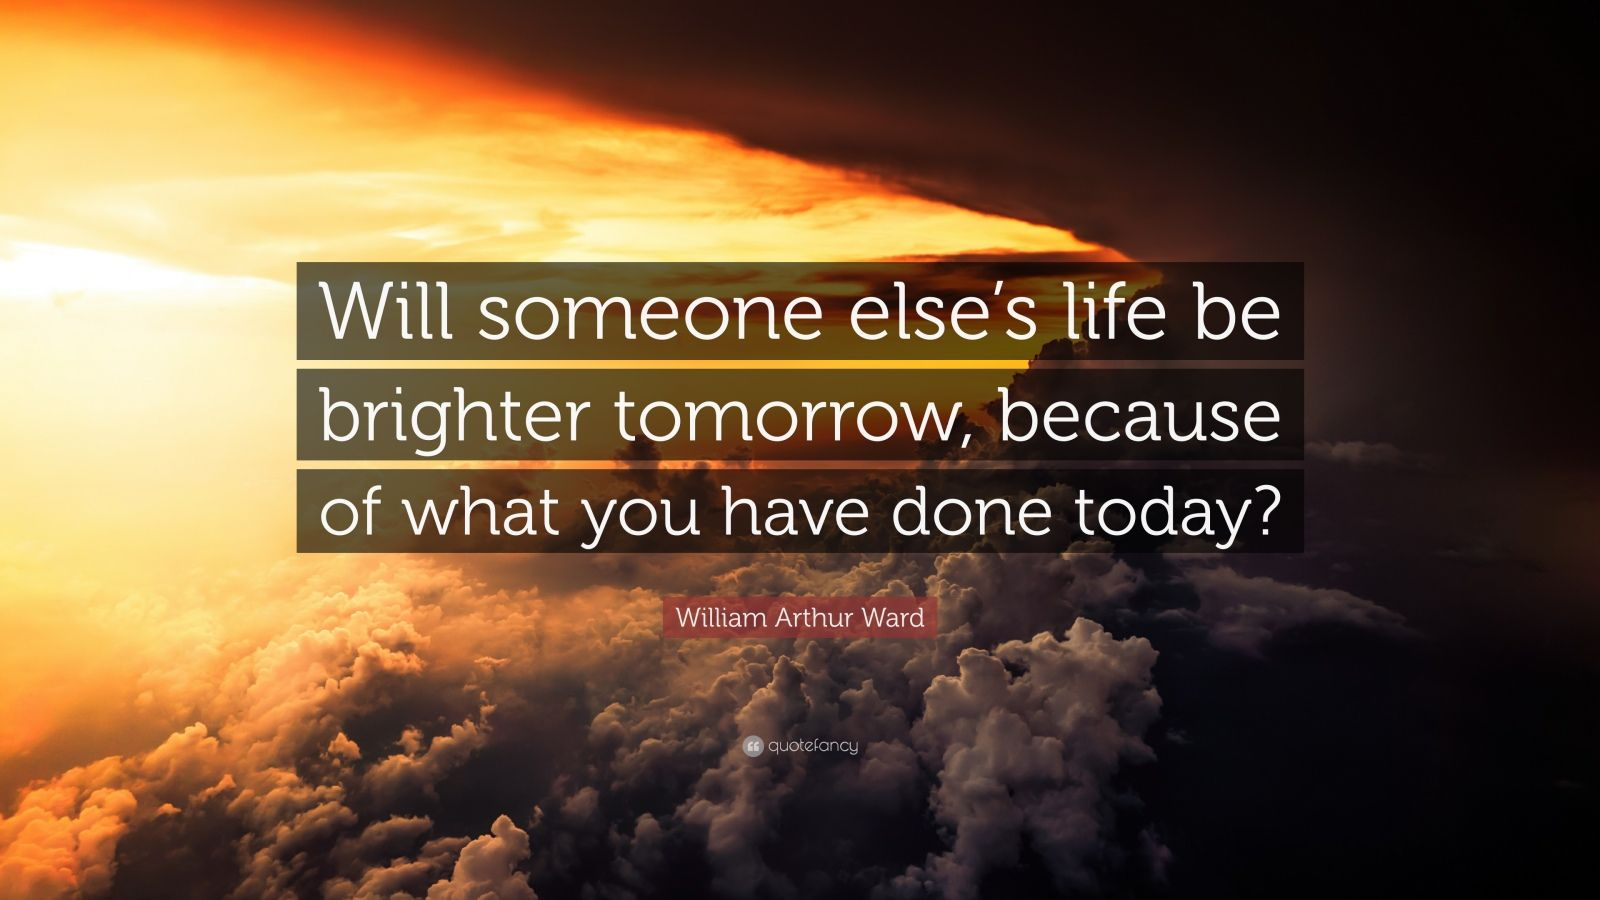 """William Arthur Ward Quote: """"Will someone else's life be brighter tomorrow, because of what you have done today?"""""""